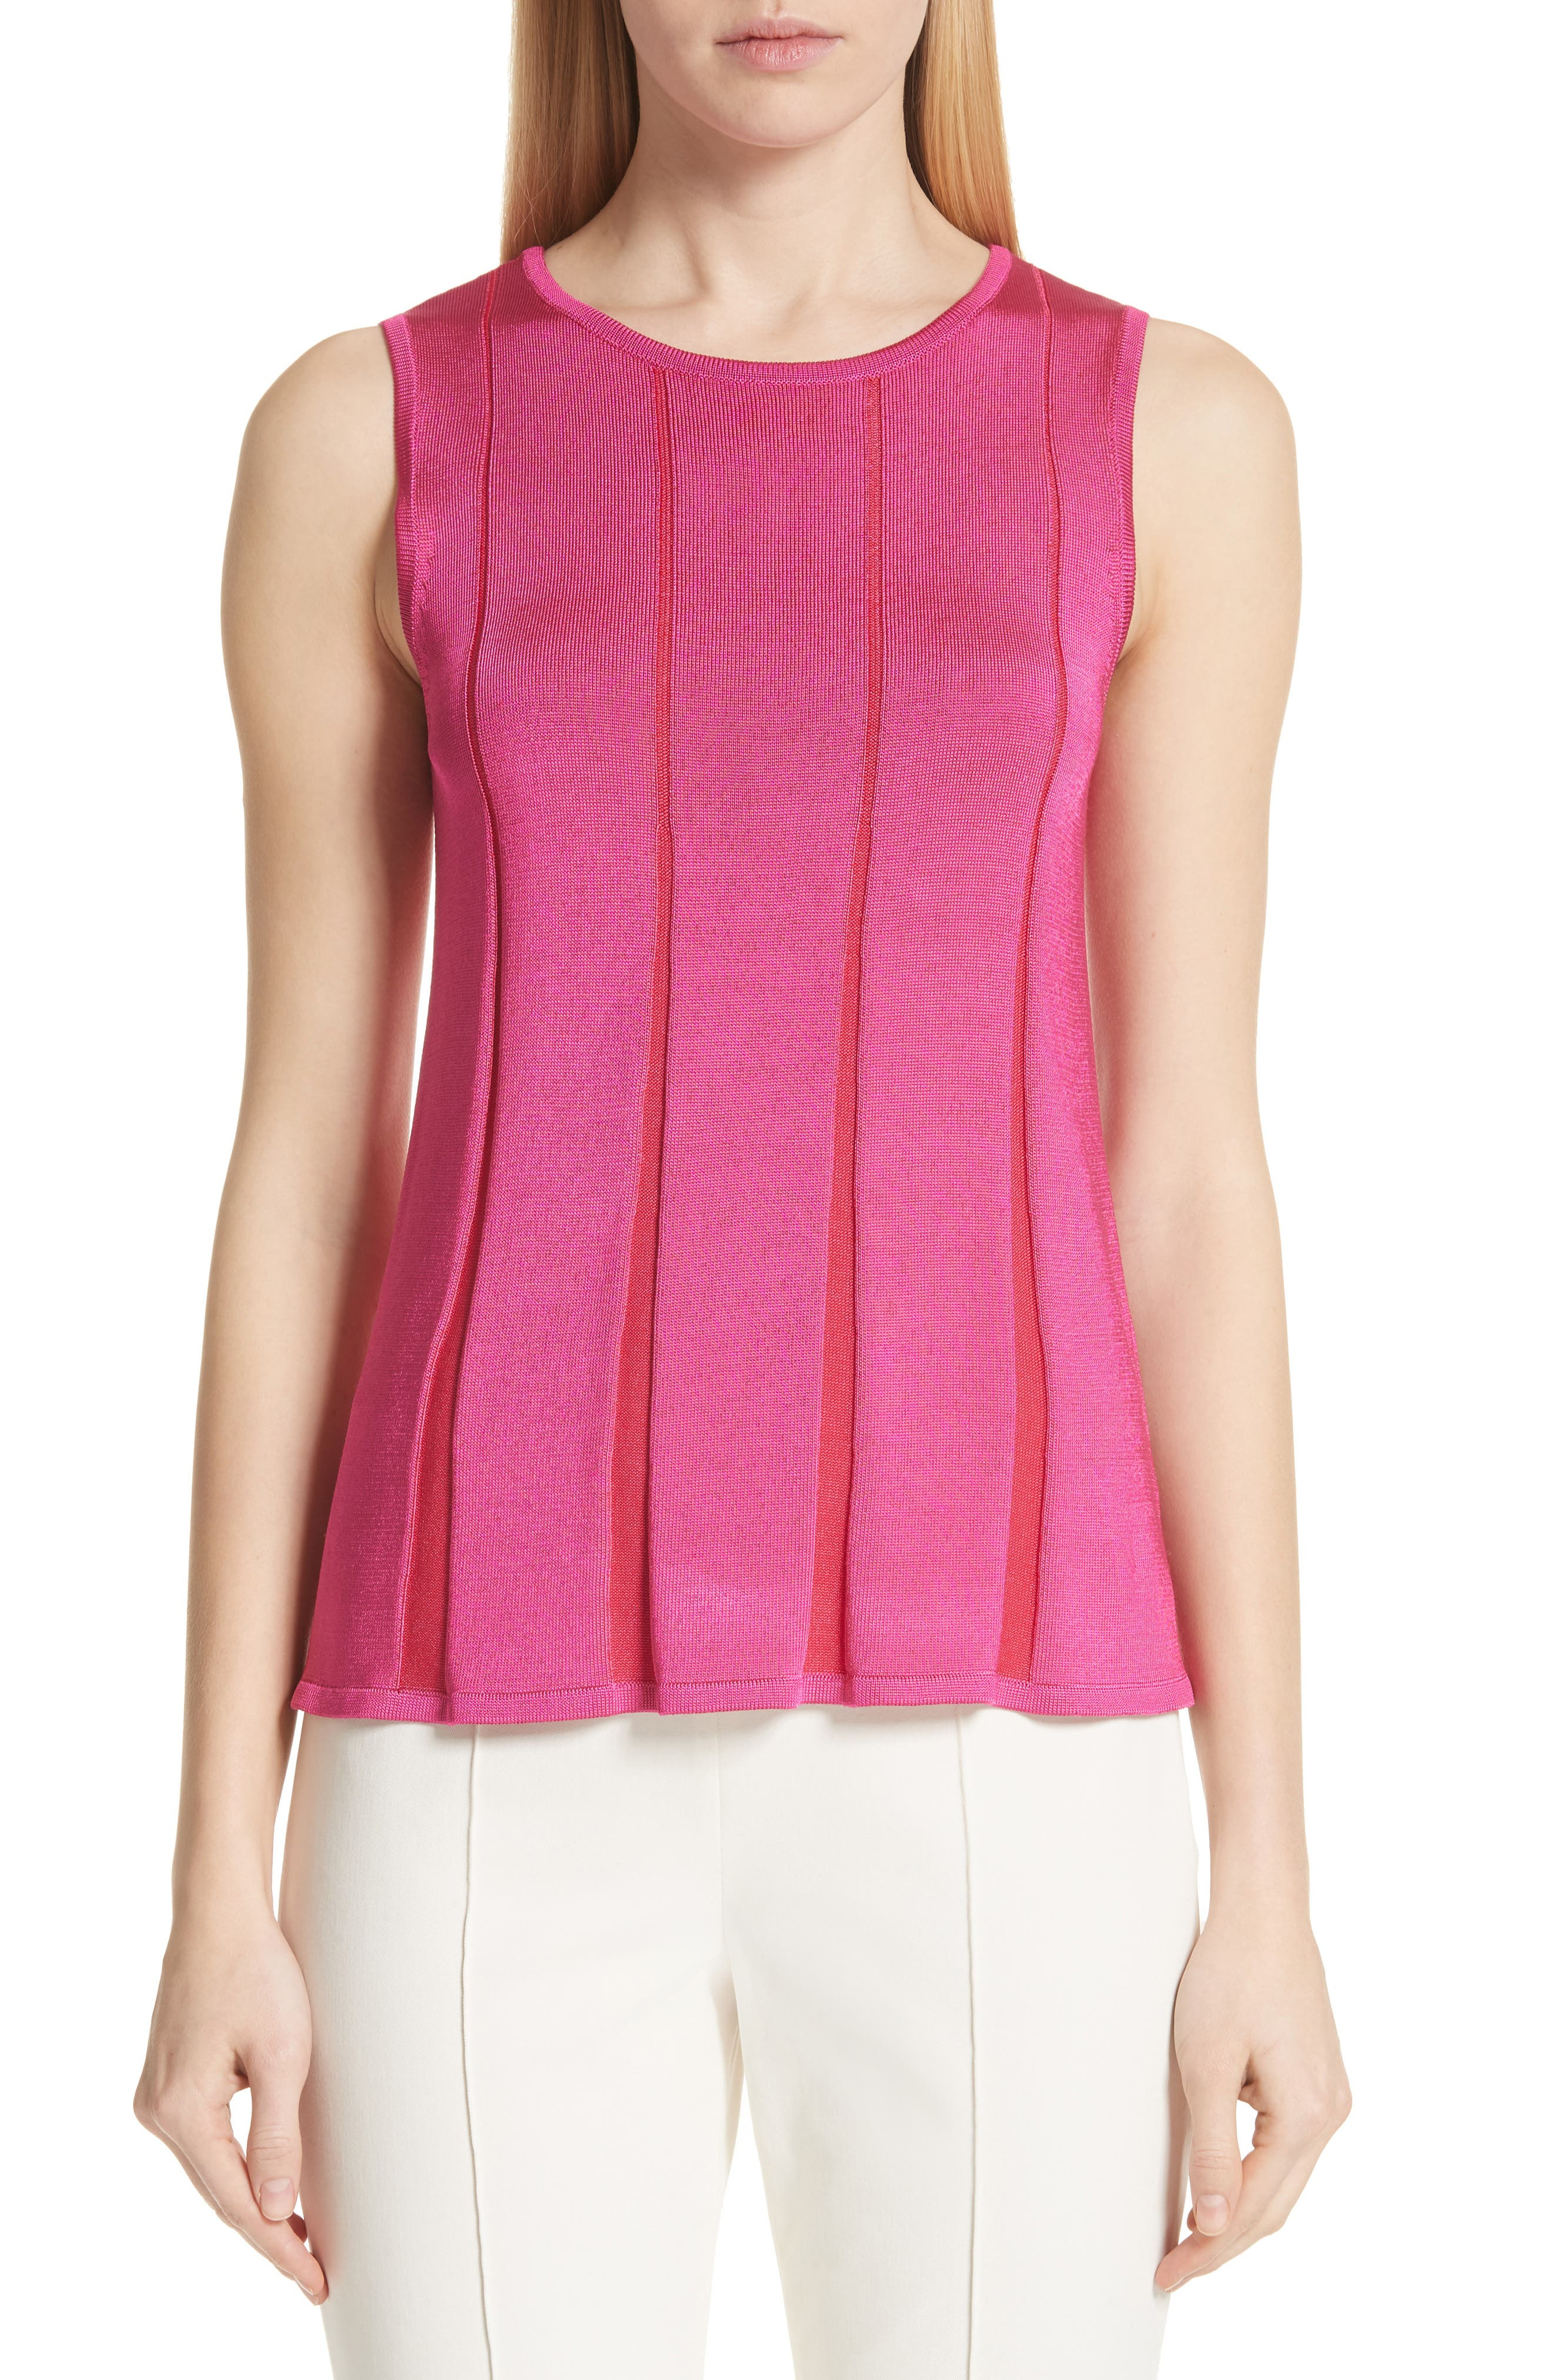 Plaited Fit & Flare Sleeveless Sweater in Fuchsia/ Lingonberry